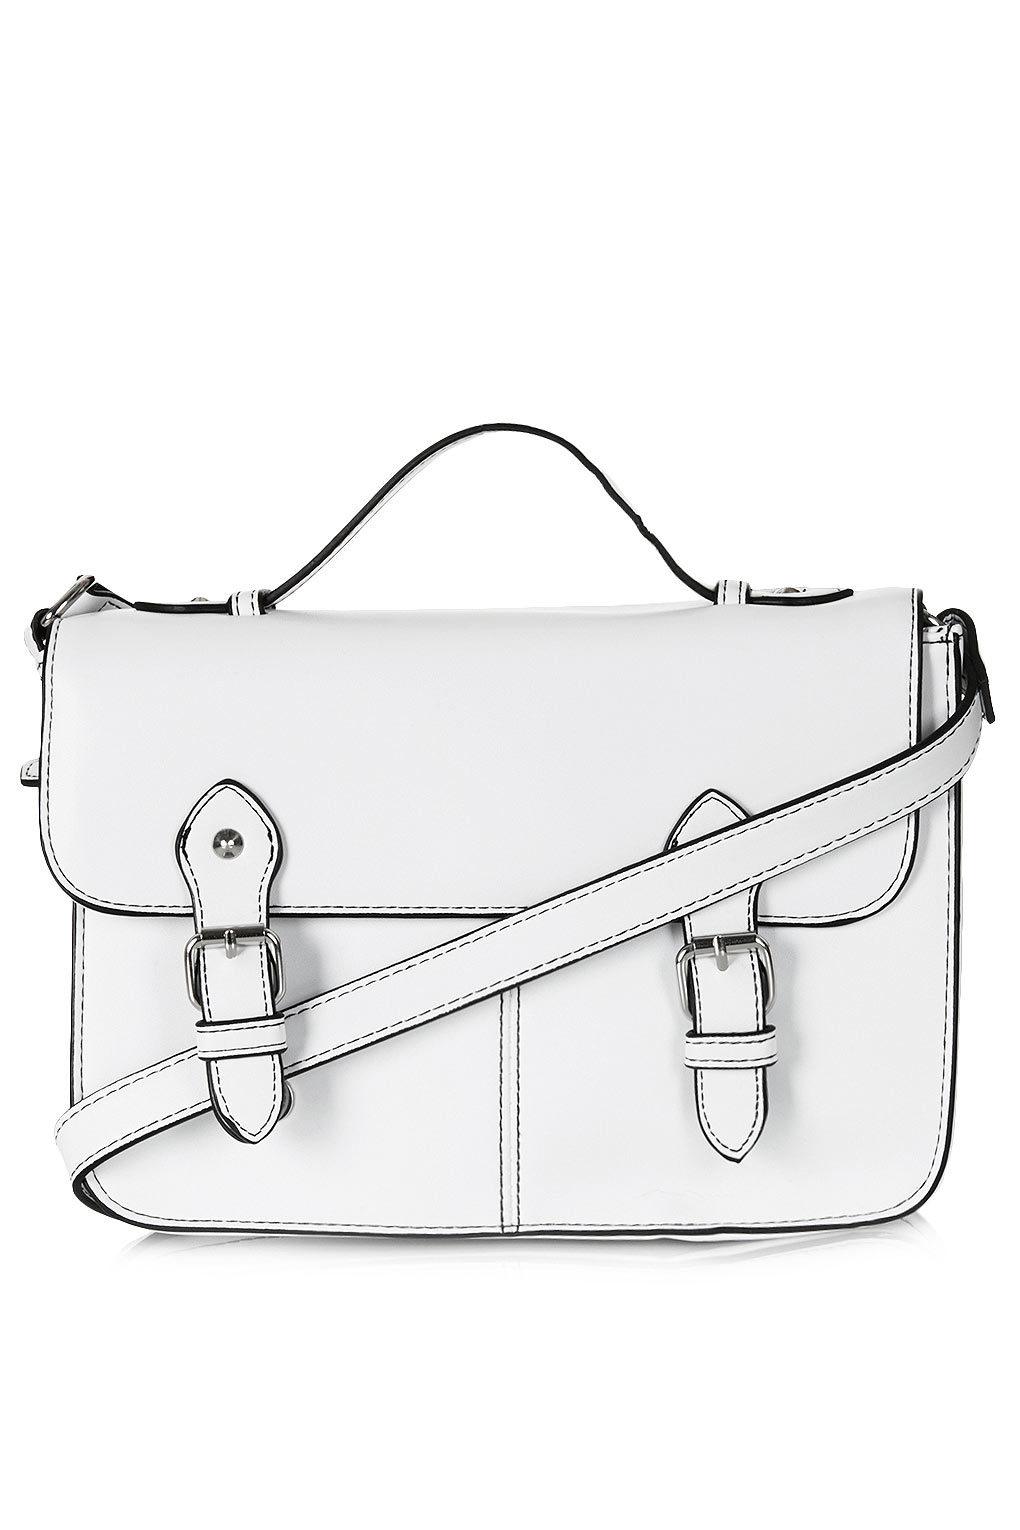 Topshop Edge Paint Satchel in White | Lyst